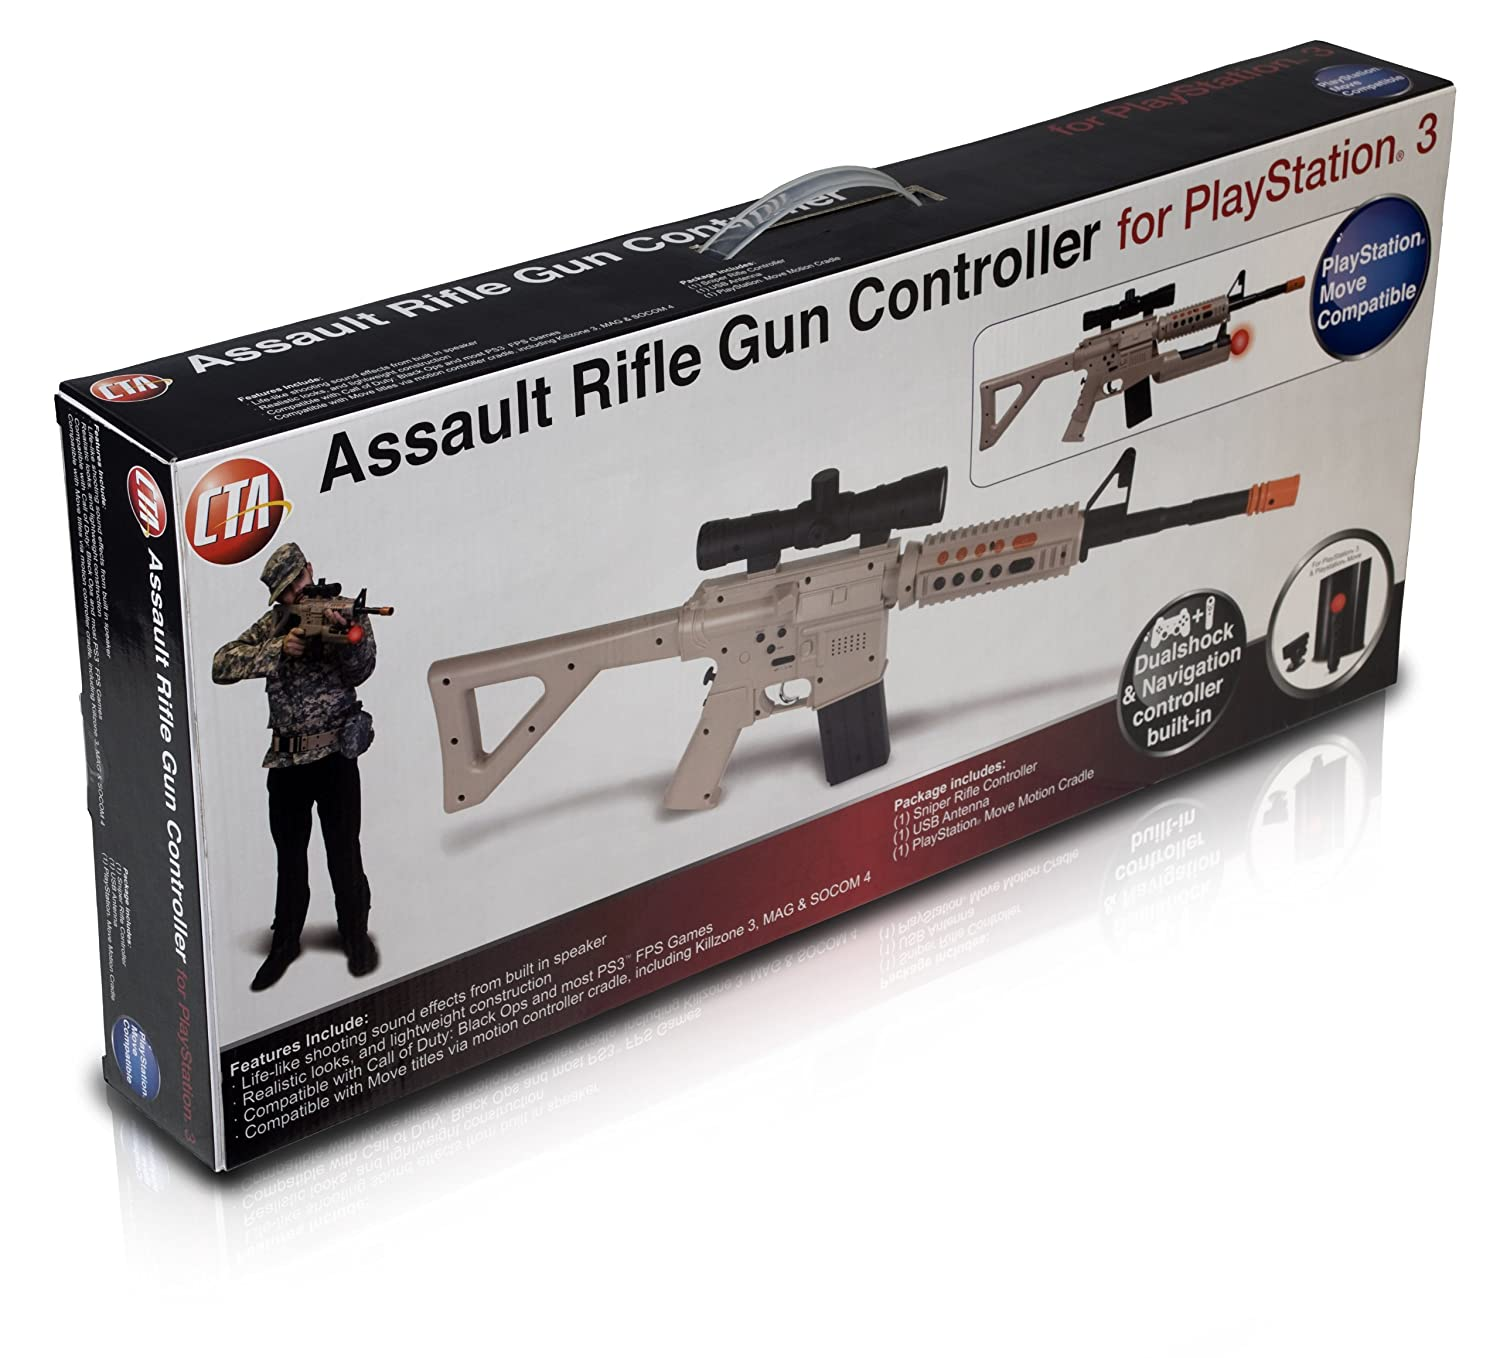 PS3 / PS3 Move Assault Rifle Controller - Standard Edition